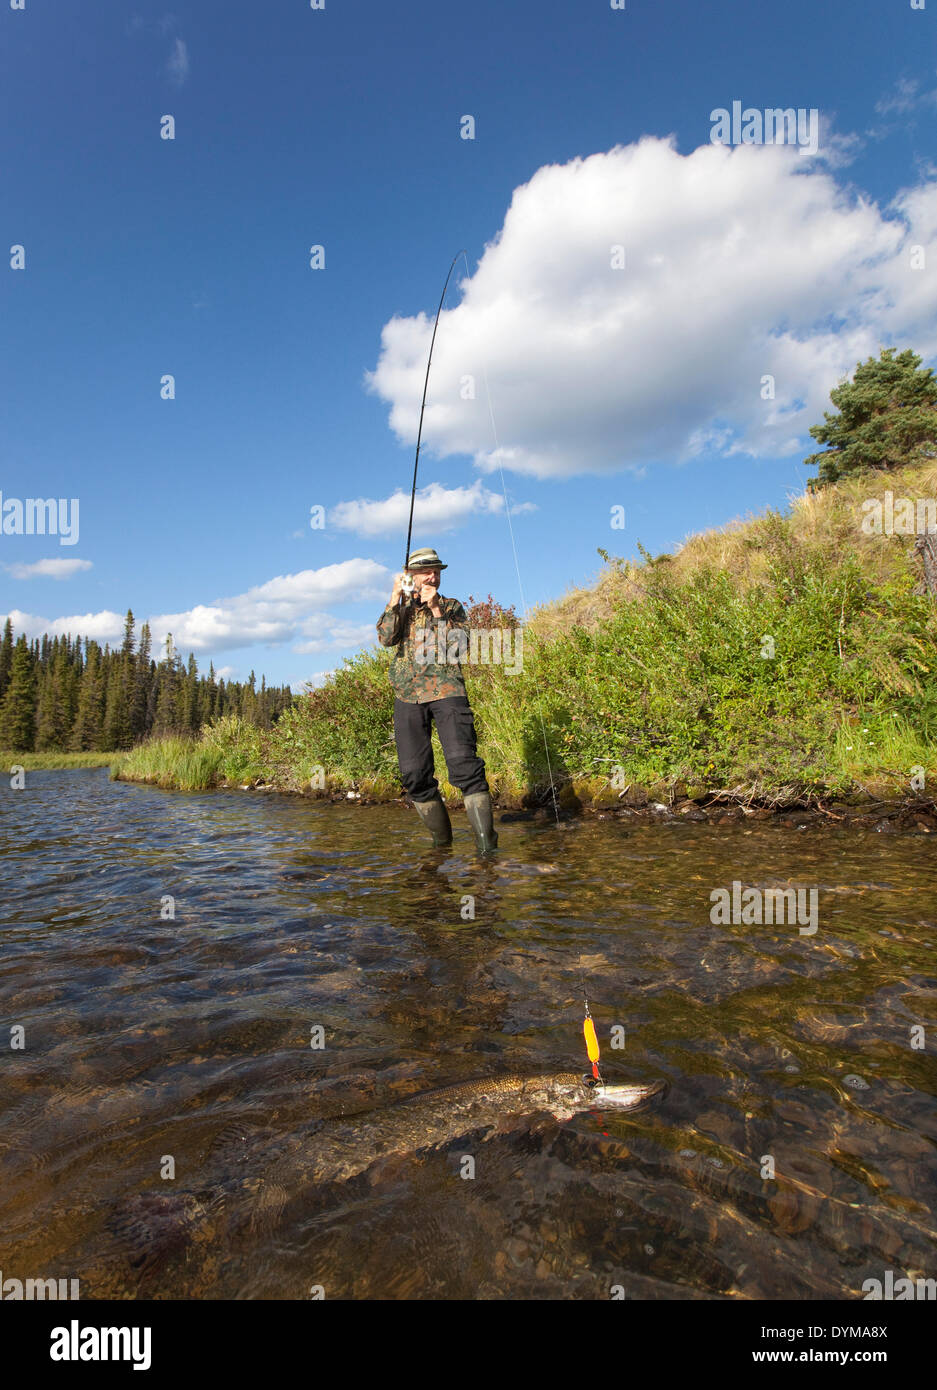 Man spin fishing for Northern Pike (Esox lucius), Caribou Lakes, head waters of the Liard River, Yukon Territory, Stock Photo